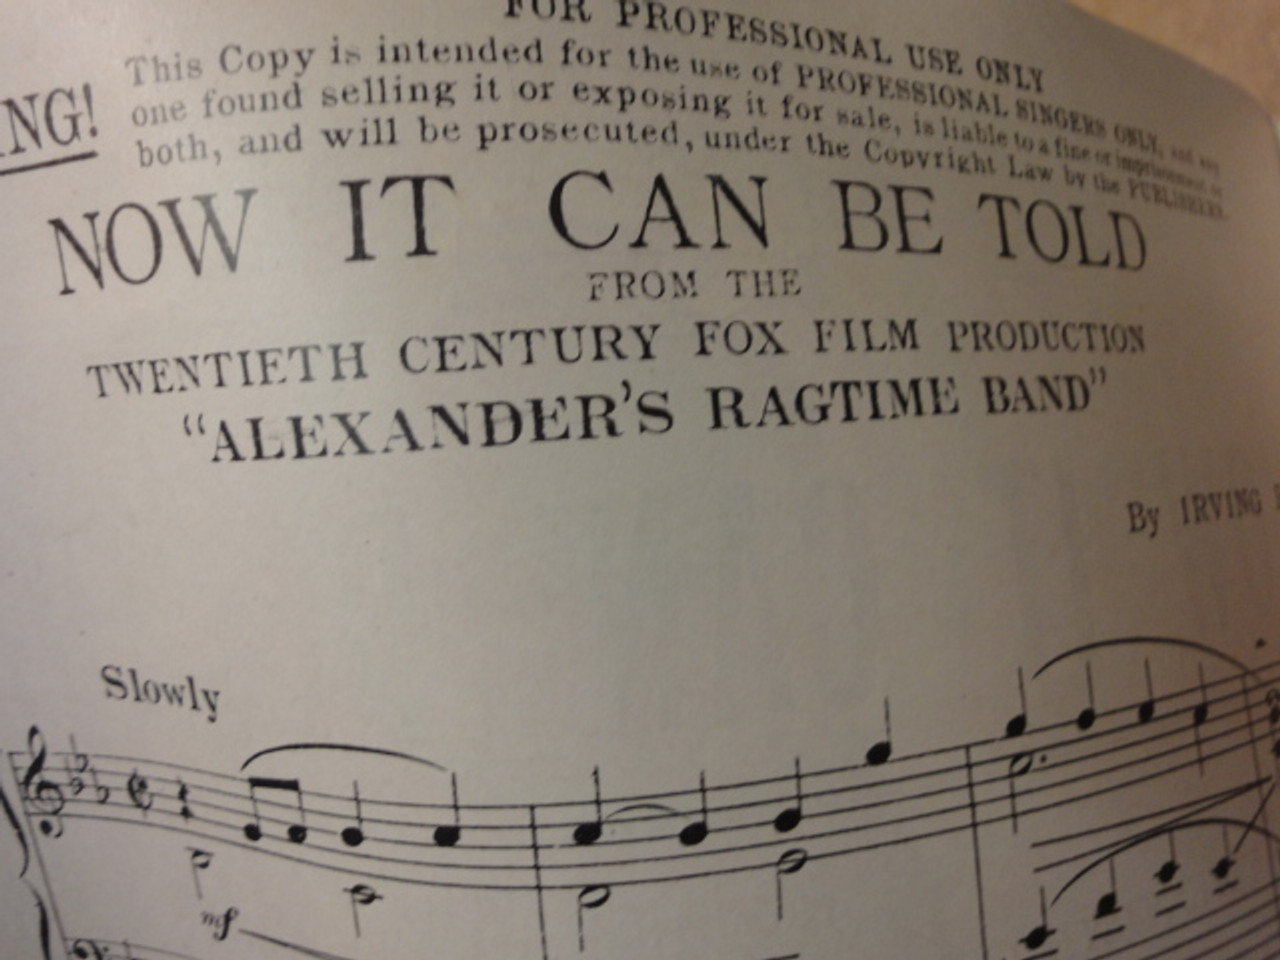 """Berlin, Irving """"Now It Can Be Told"""" 1938 Sheet Music Signed Autograph """"Alexander's Ragtime Band"""" Cover Photo"""